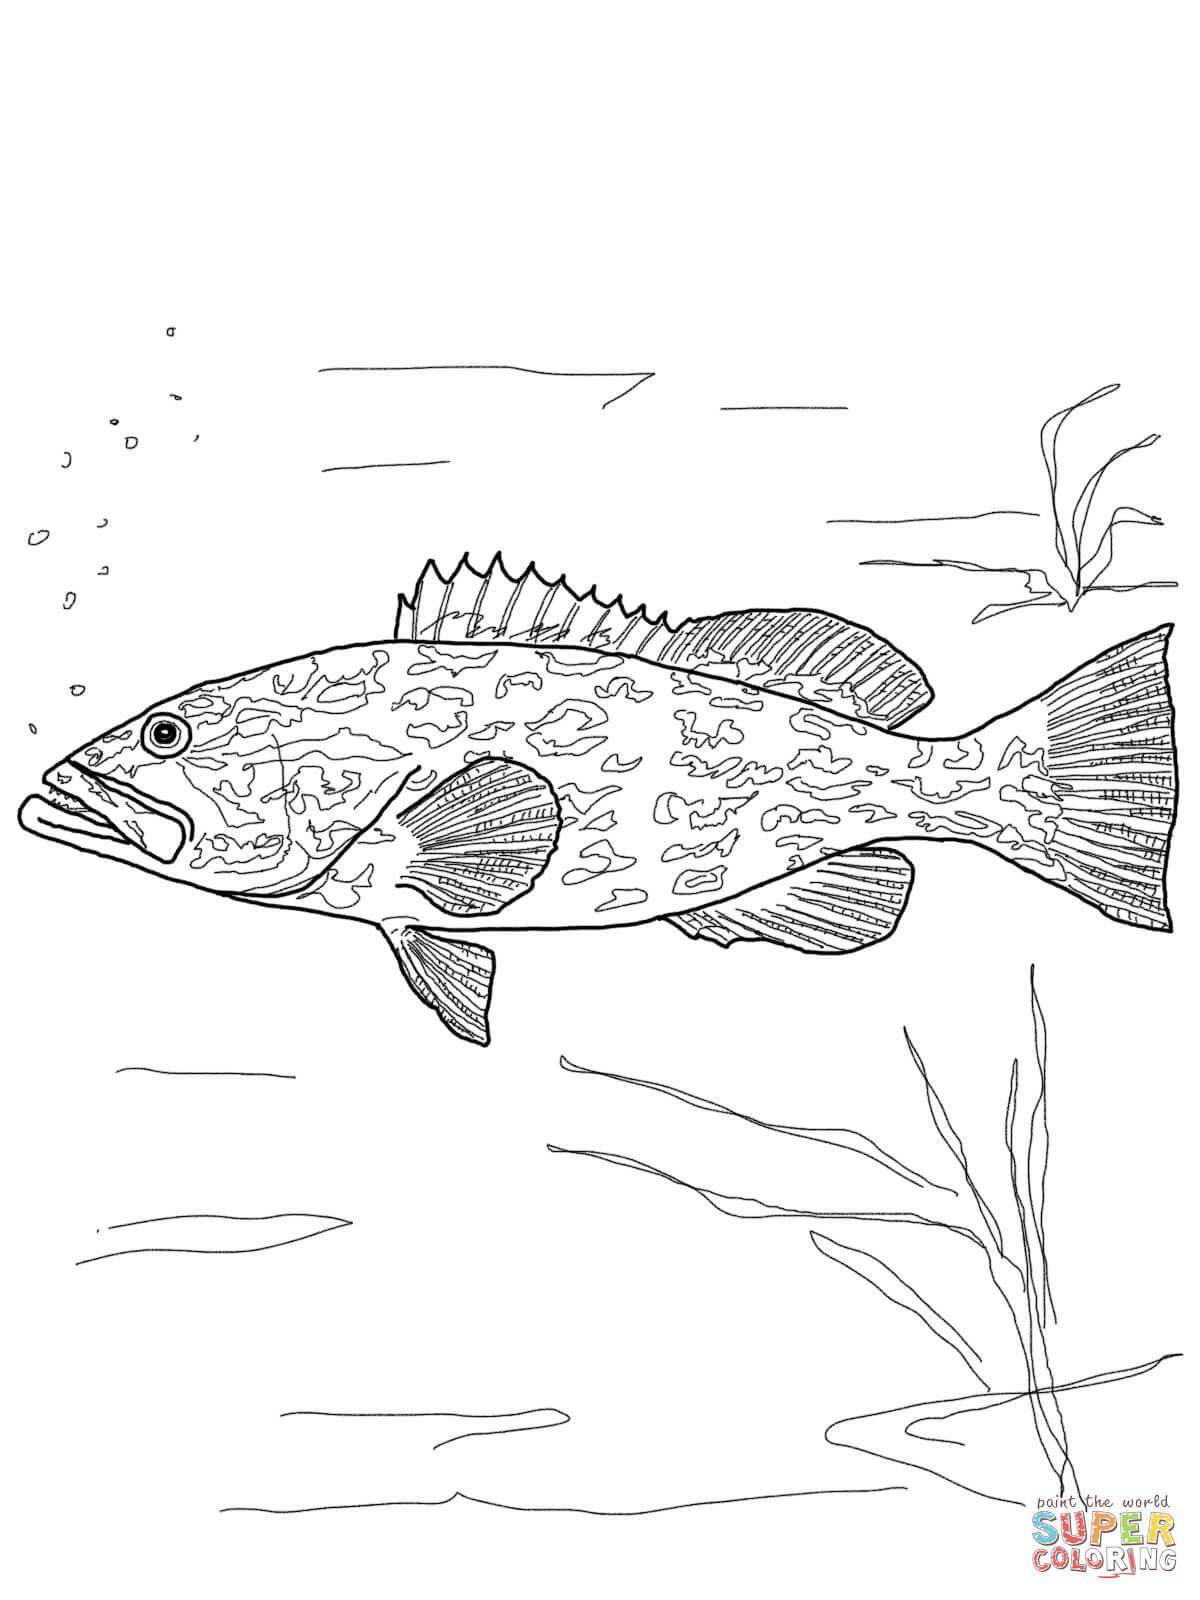 Gag Grouper Coloring Page Free Printable Coloring Pages